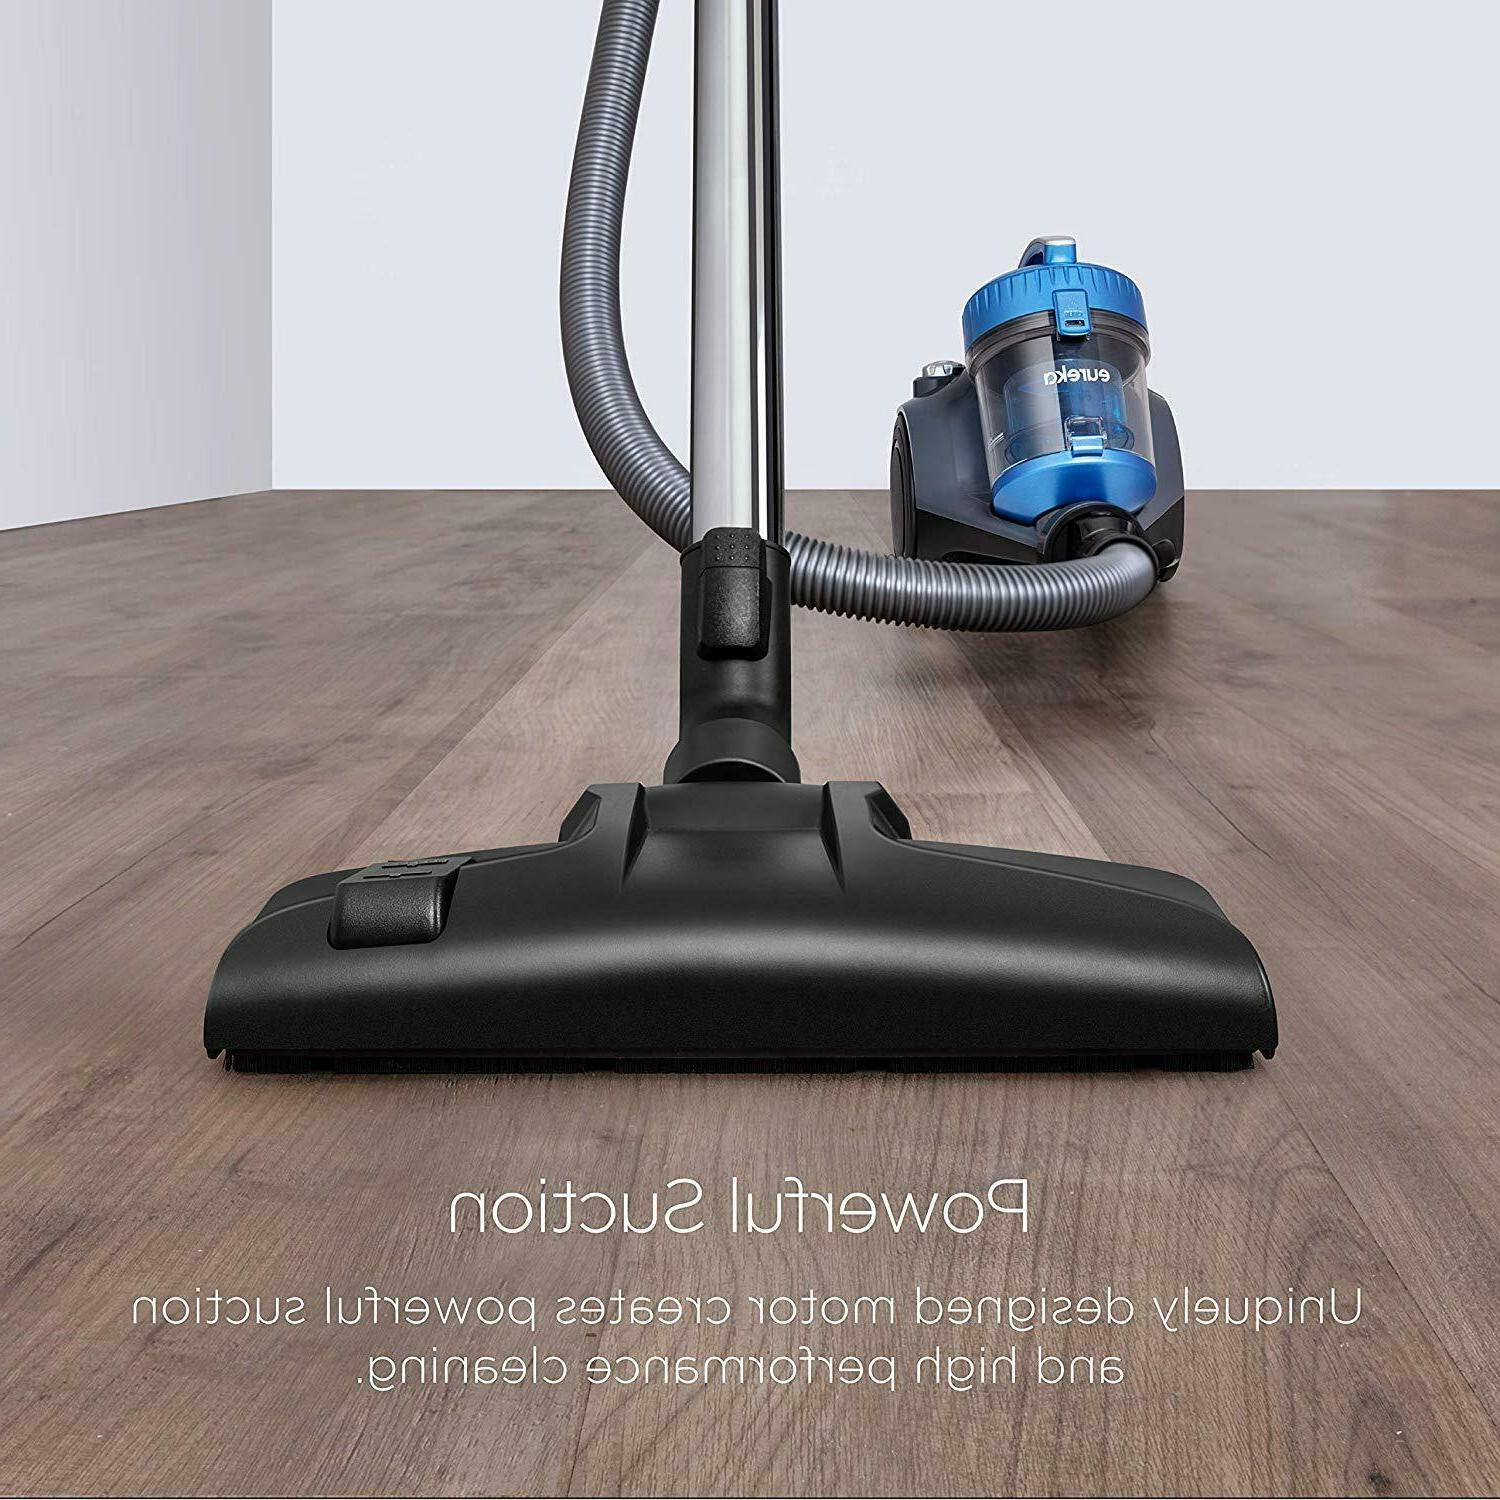 Eureka NEN110A Bagless Canister Vacuum Cleaner - Free